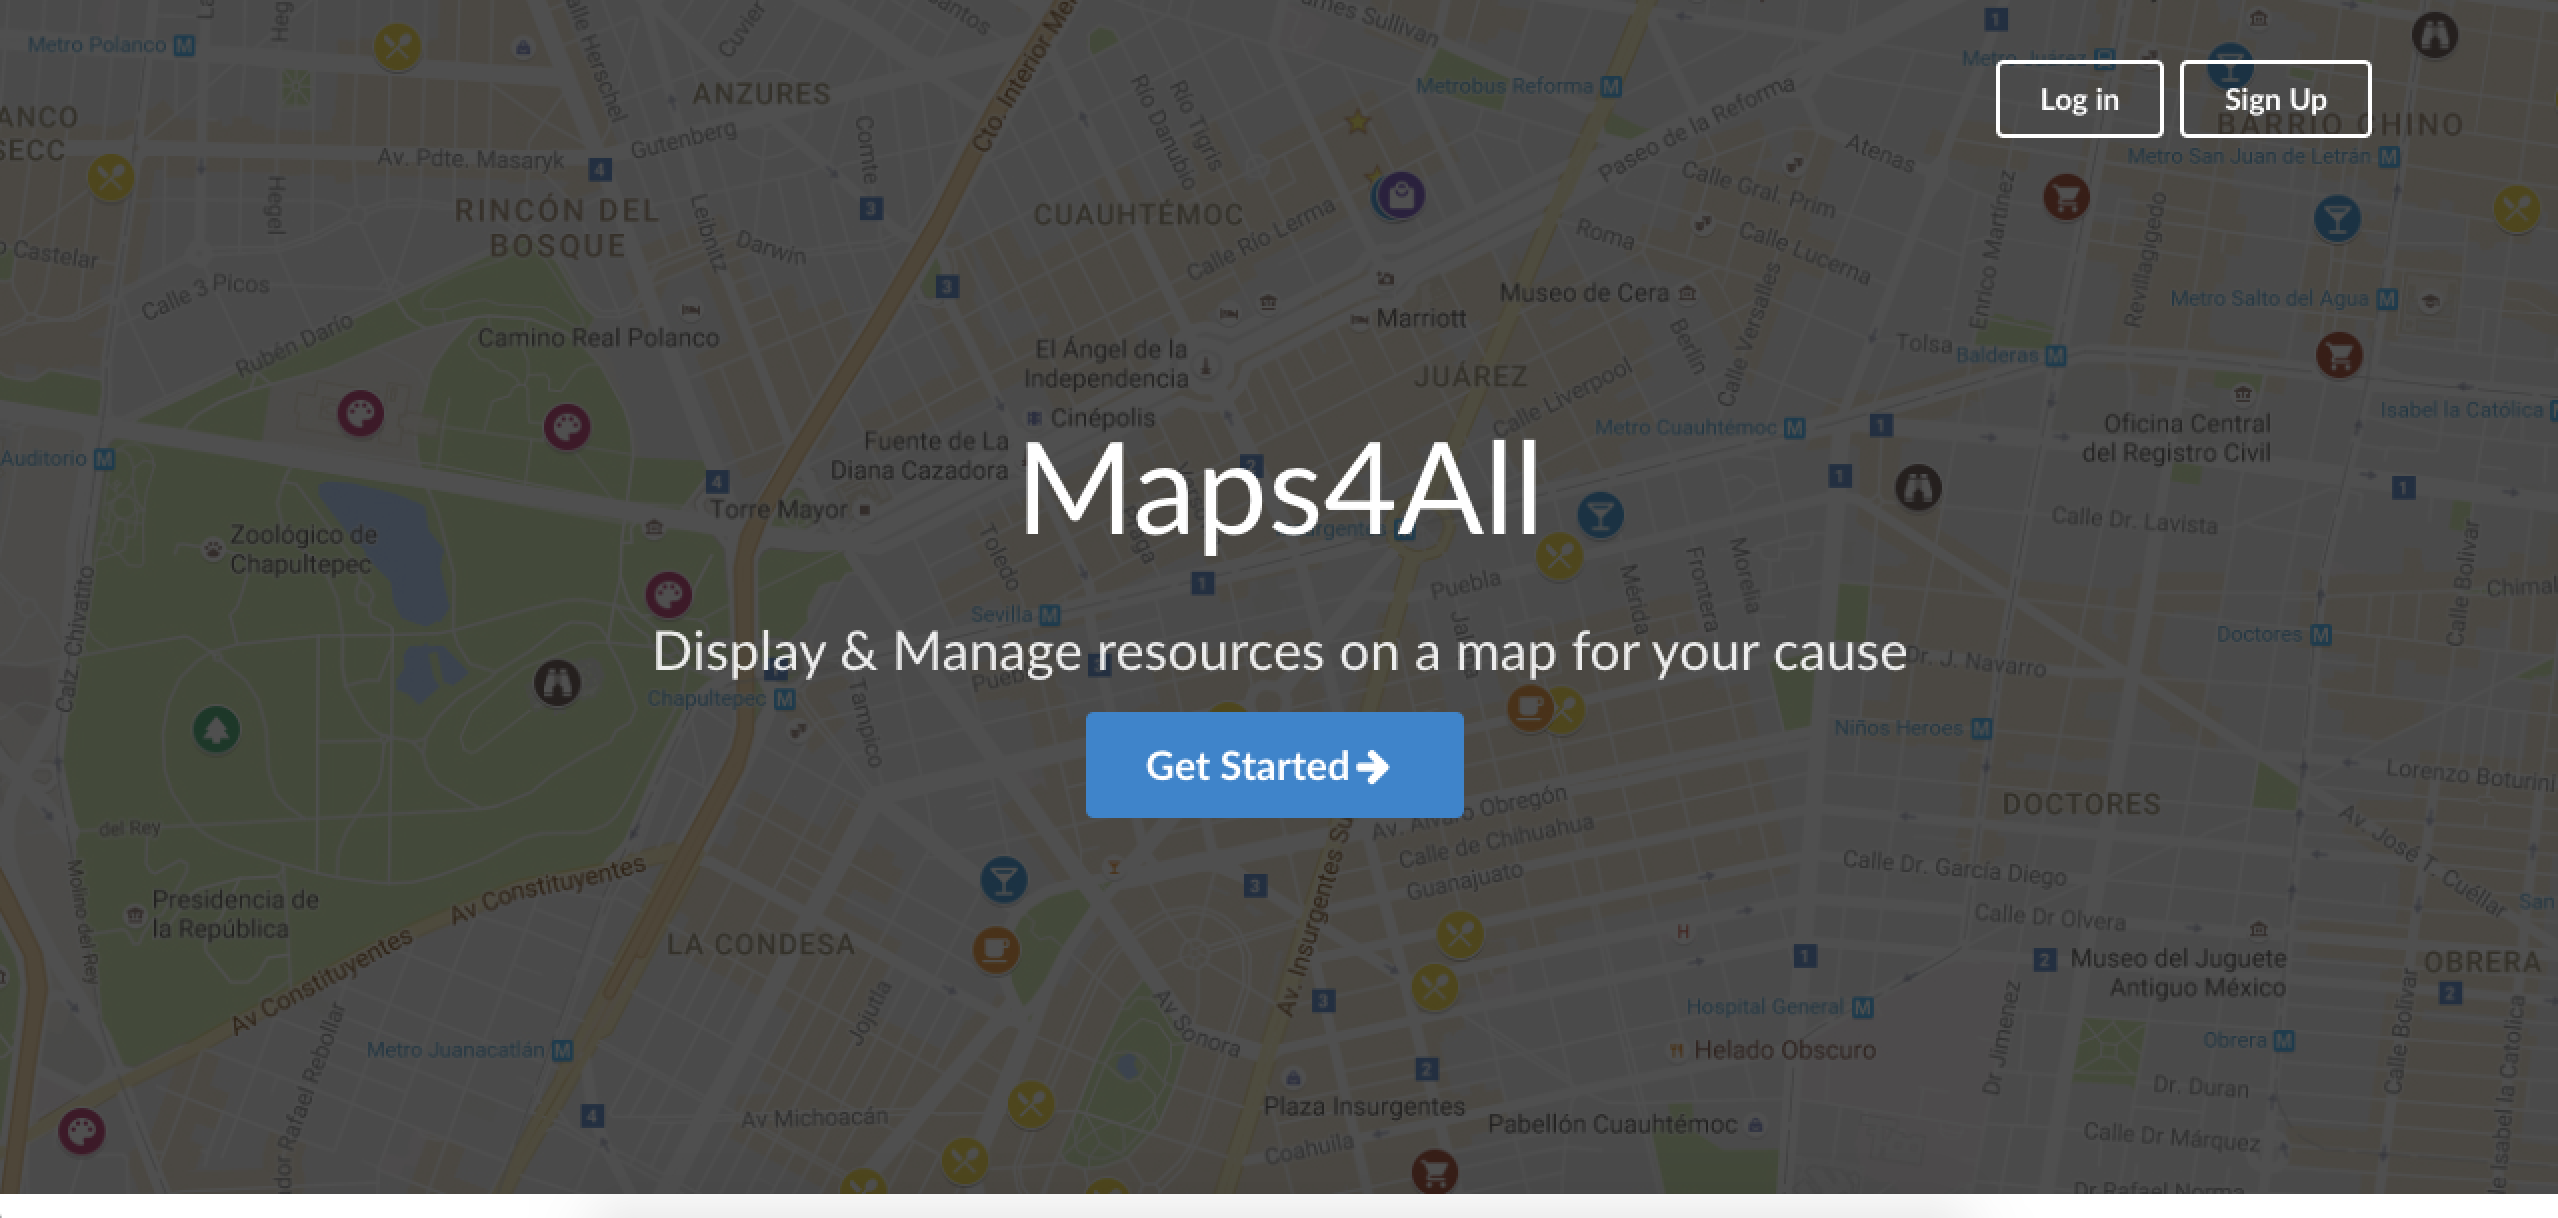 Maps4All Signup 1